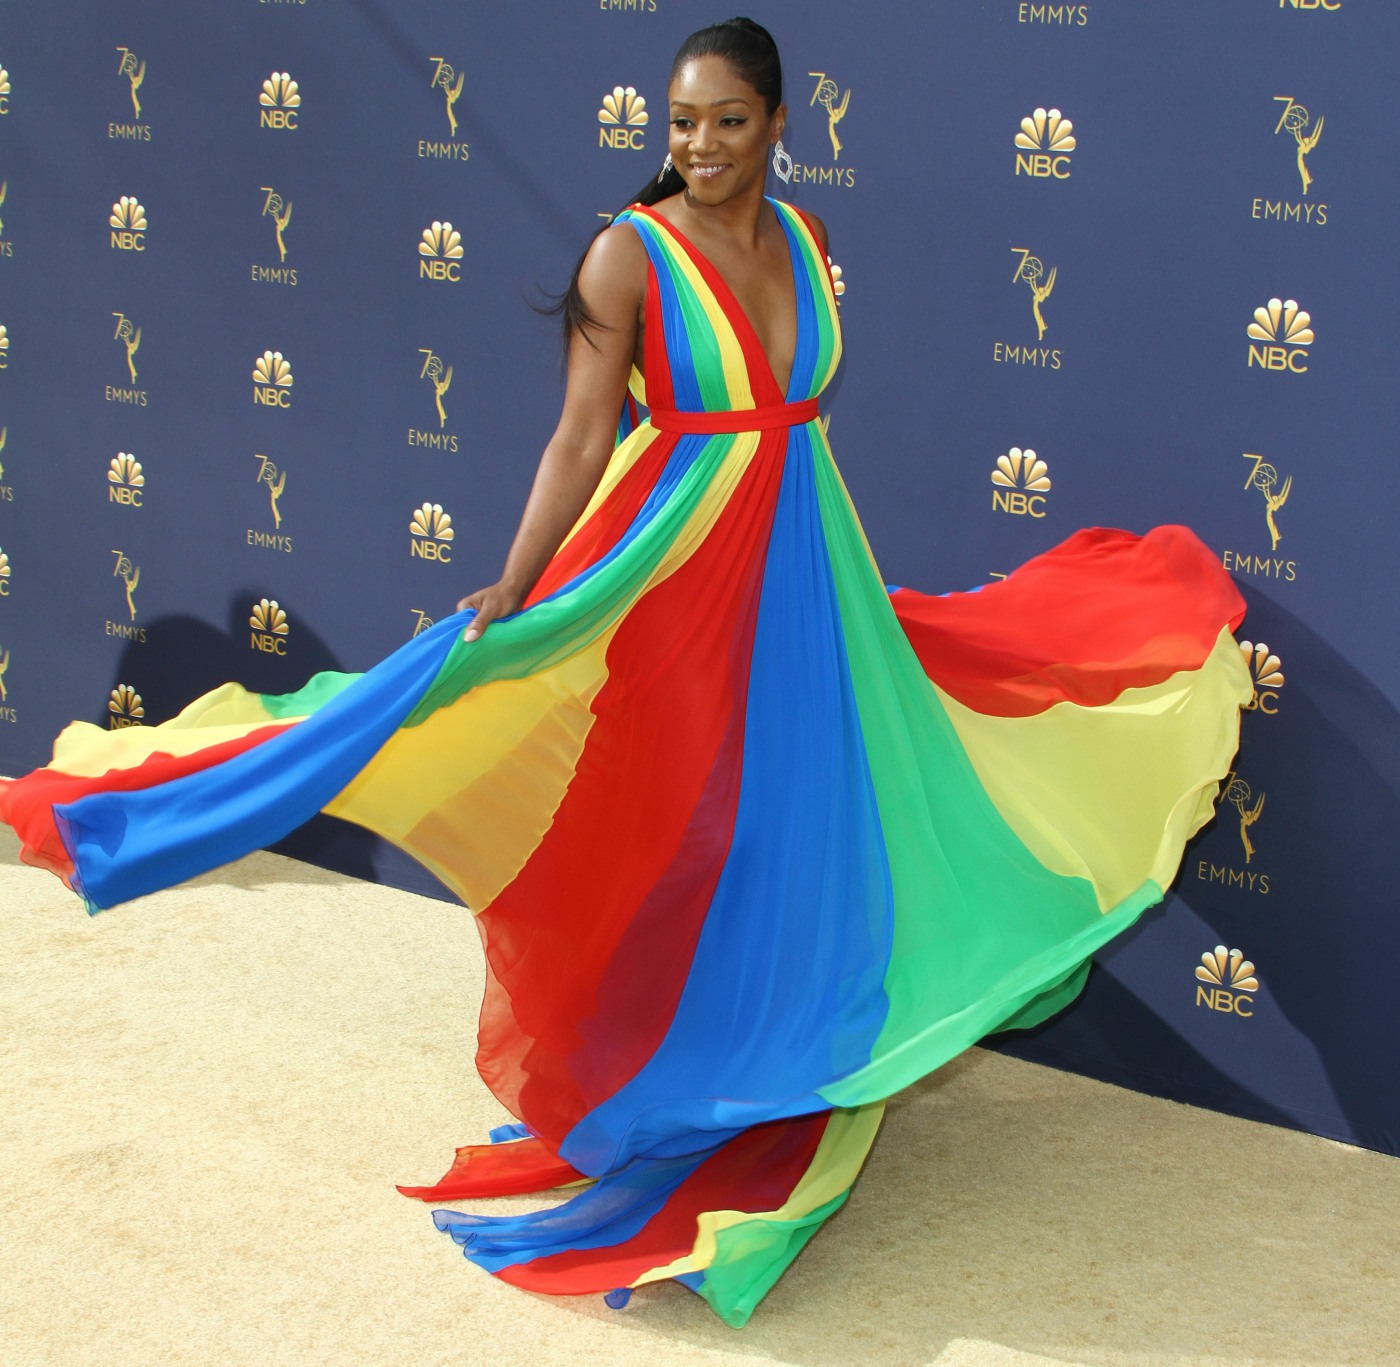 Tiffany Haddish attends The 70th Emmy Awards-Arrivals in Los Angeles